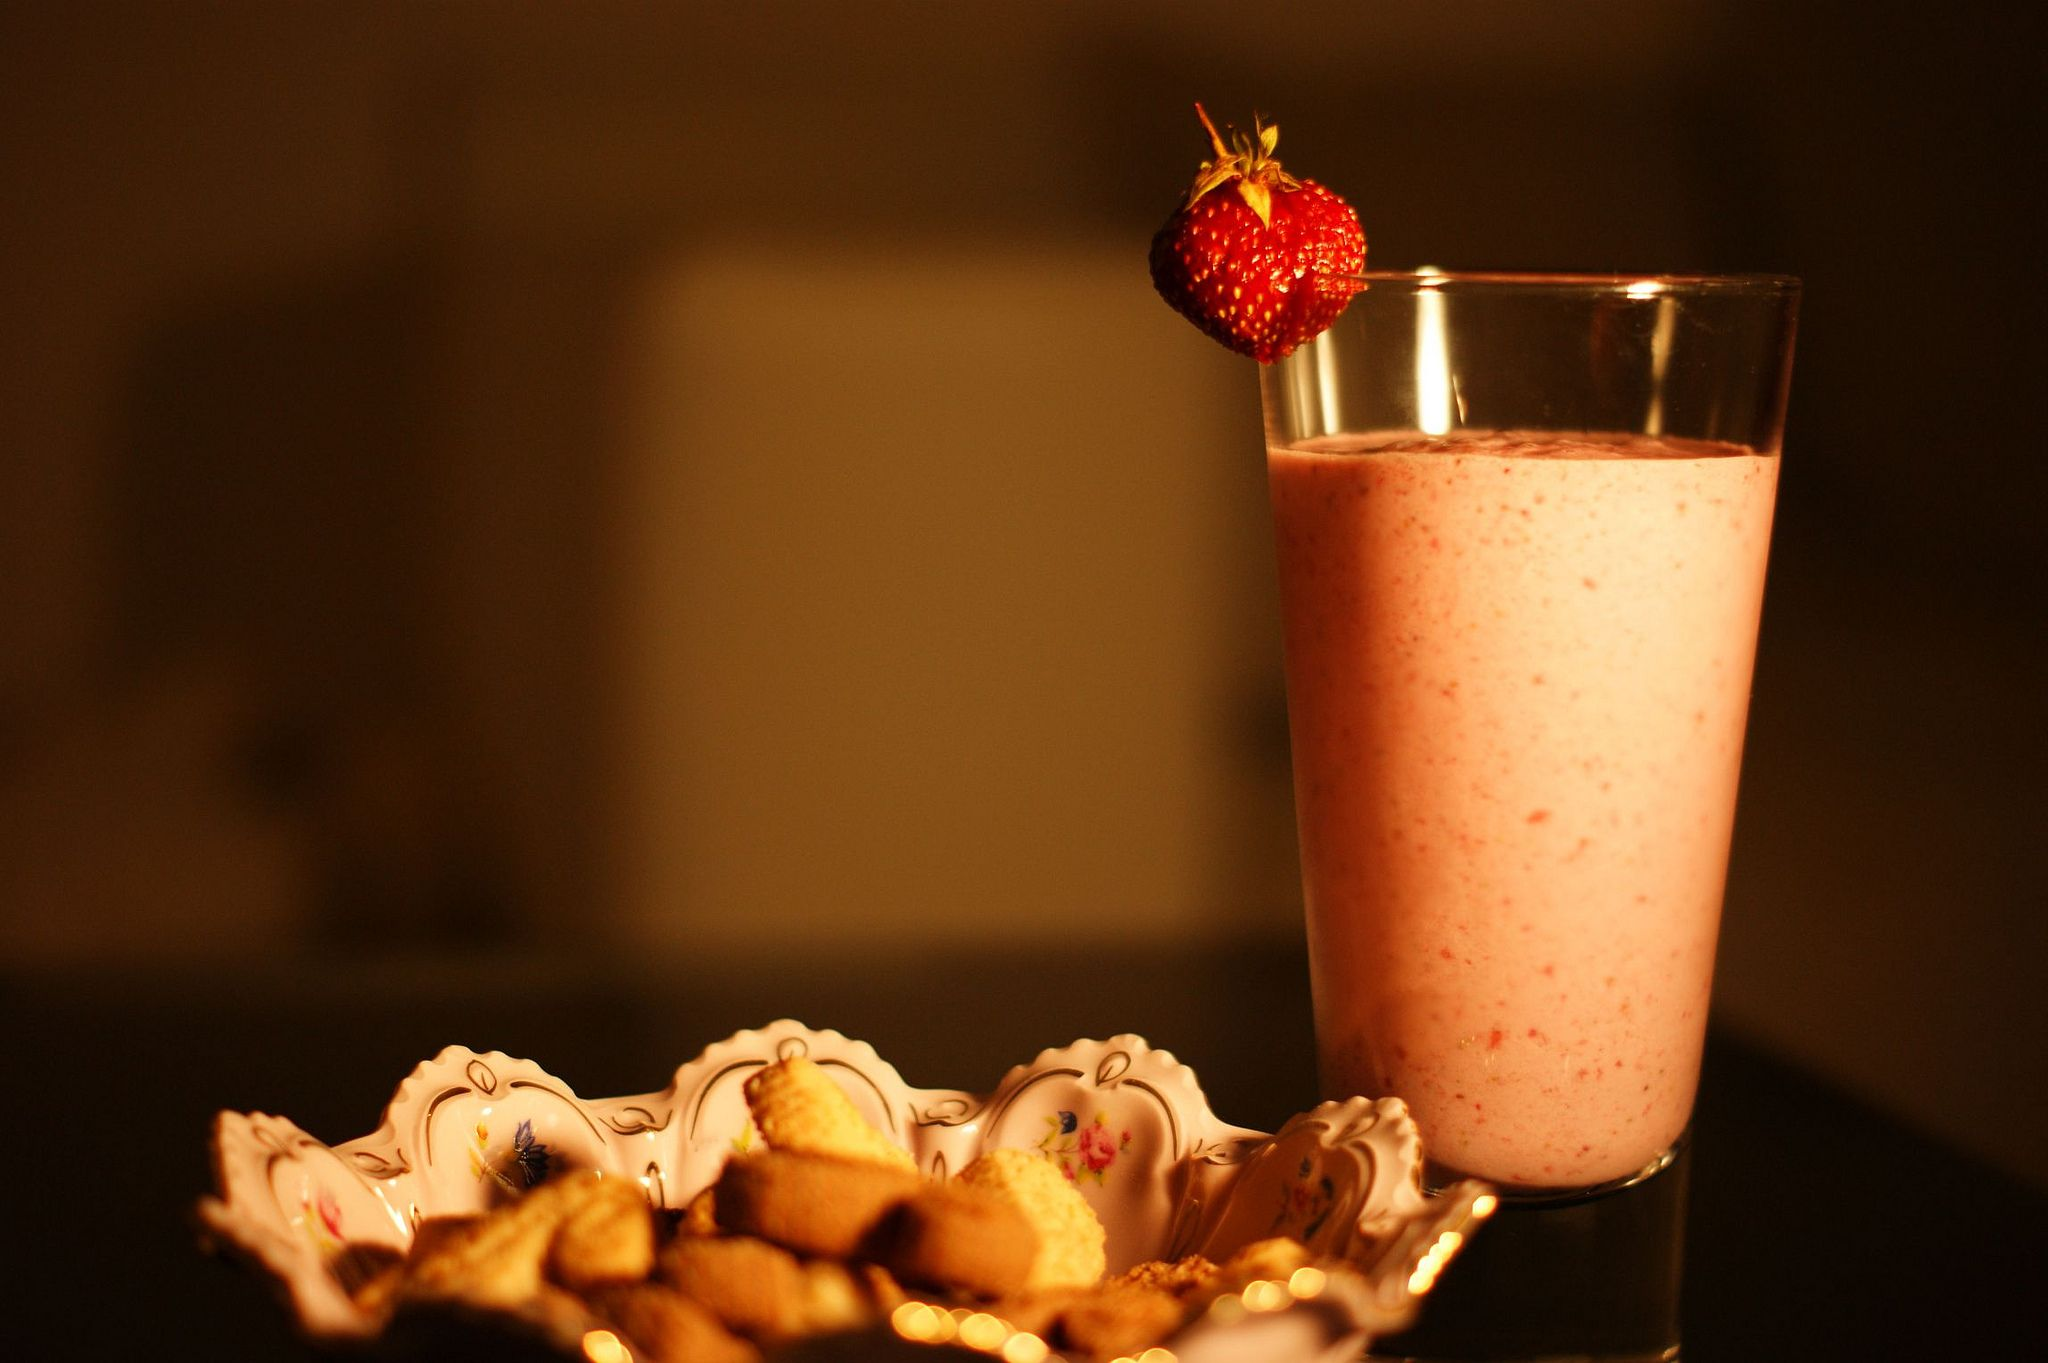 https://flic.kr/p/cbRJ1h | Day 24 - June 5, 2012 | Strawberry smoothie and some cookies.